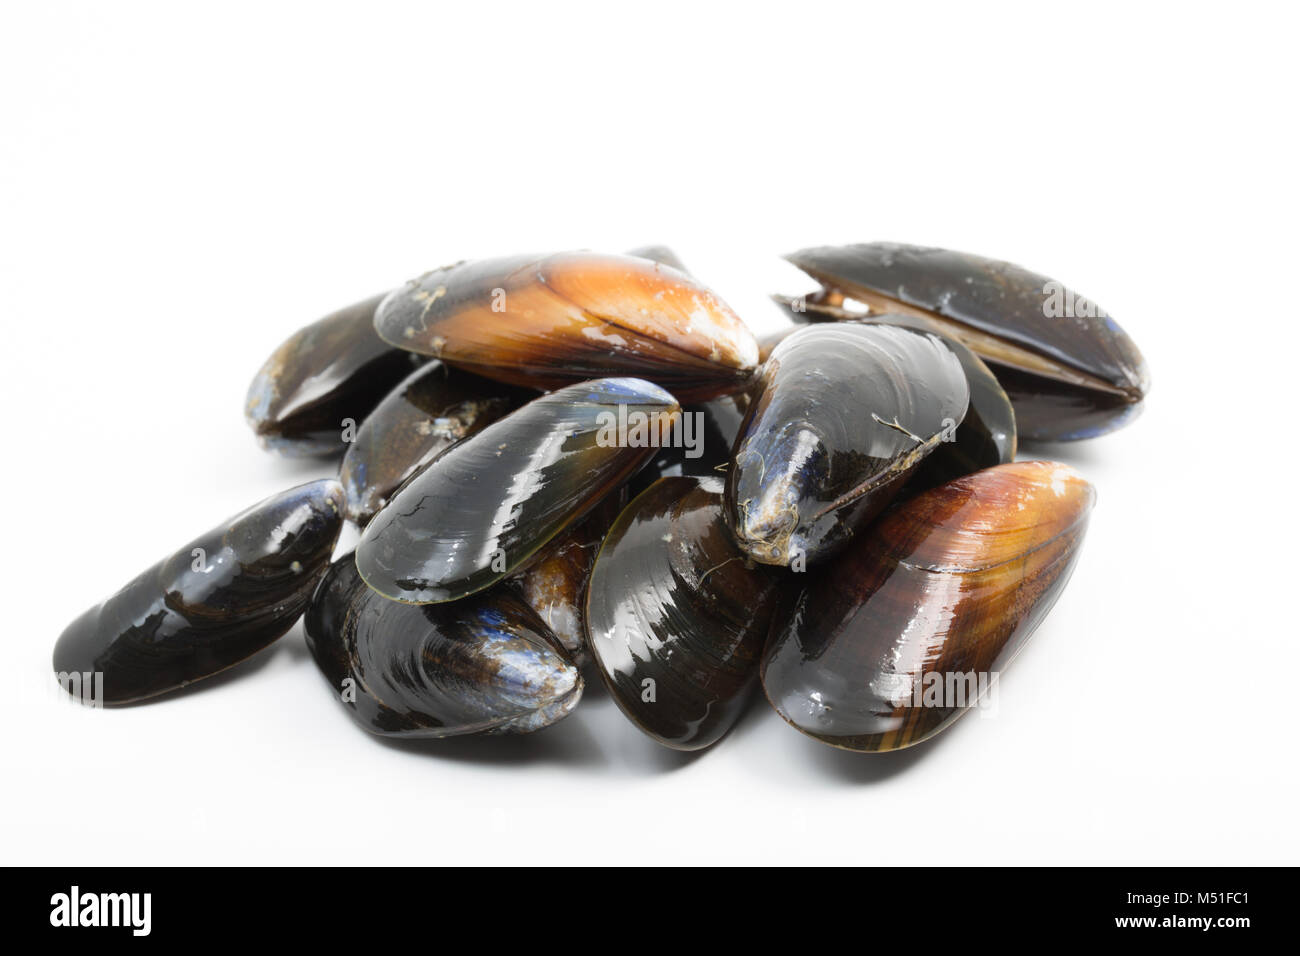 Live, rope-grown mussels, Mytilus edulis from a supermarket. The shells should close when tapped. England UK GB - Stock Image